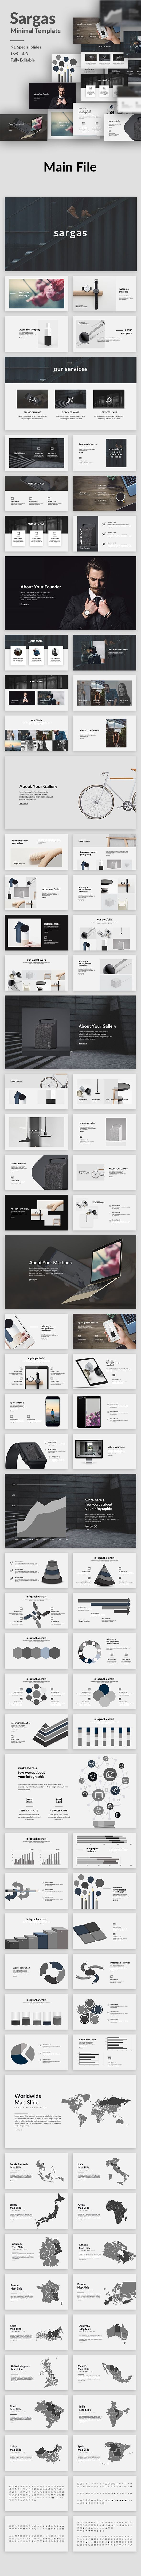 Sargas - Minimal Powerpoint Template. Download: https://graphicriver.net/item/sargas-minimal-powerpoint-template/19877847?ref=thanhdesign